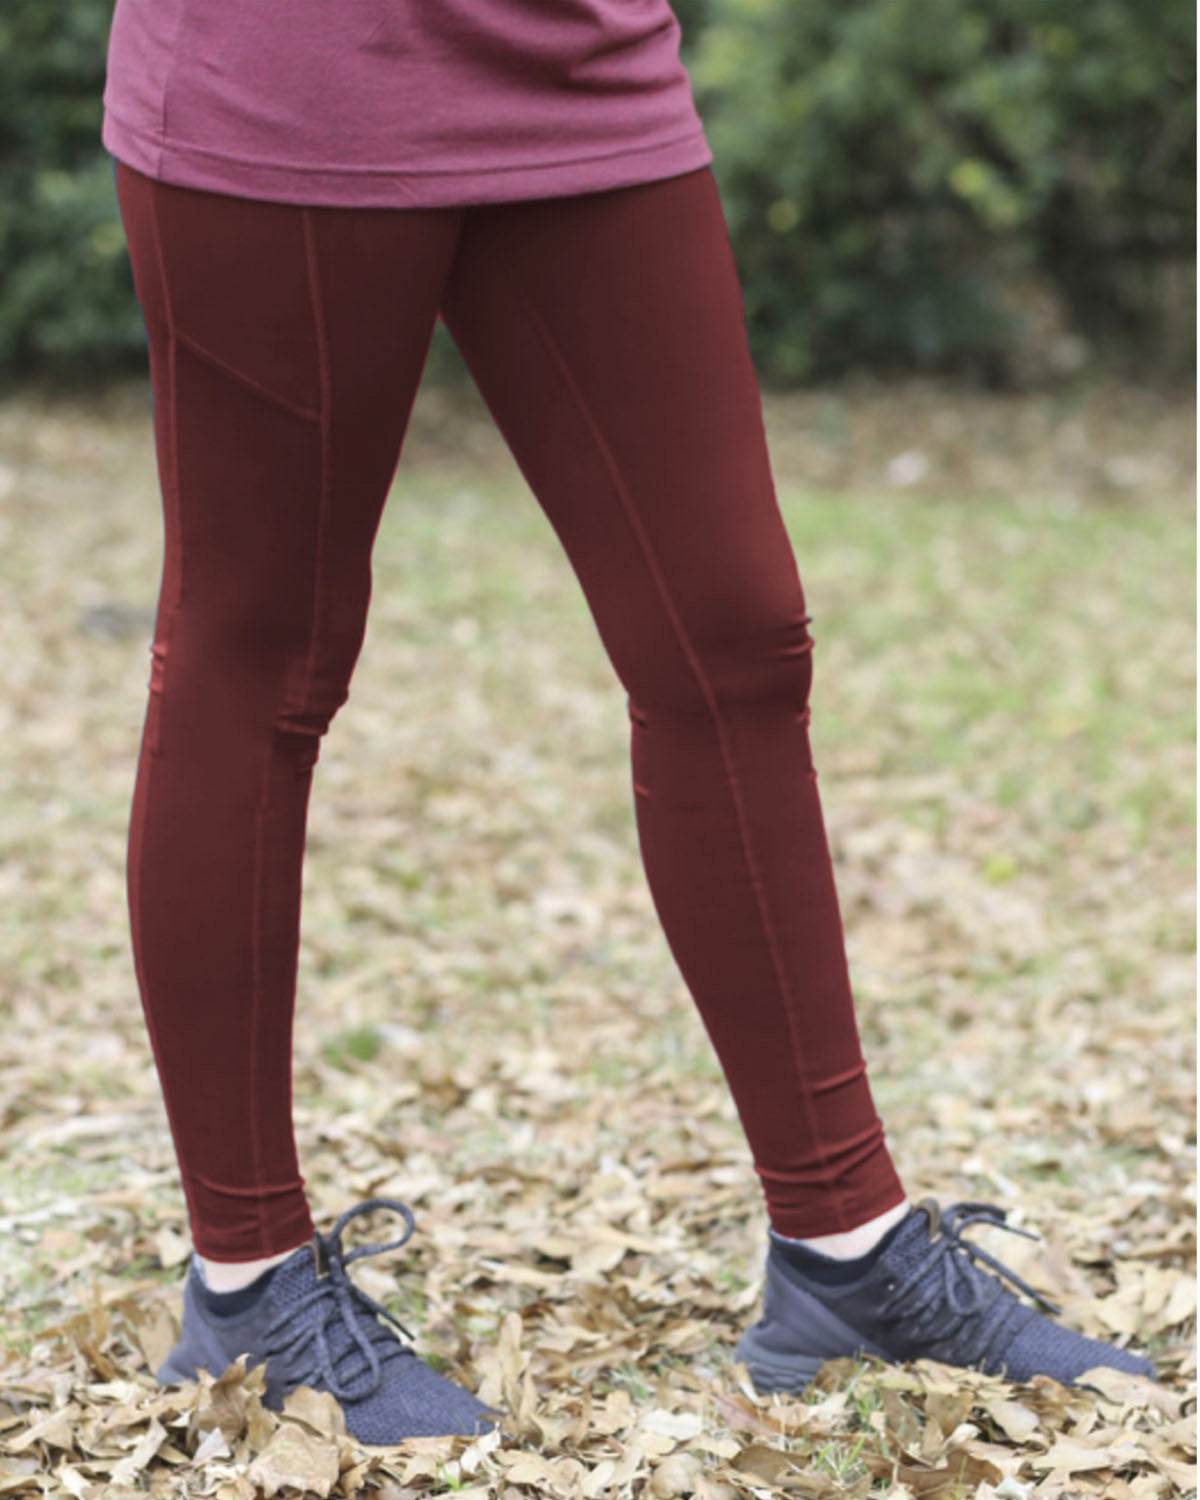 LG-1824 Crimson Leggings